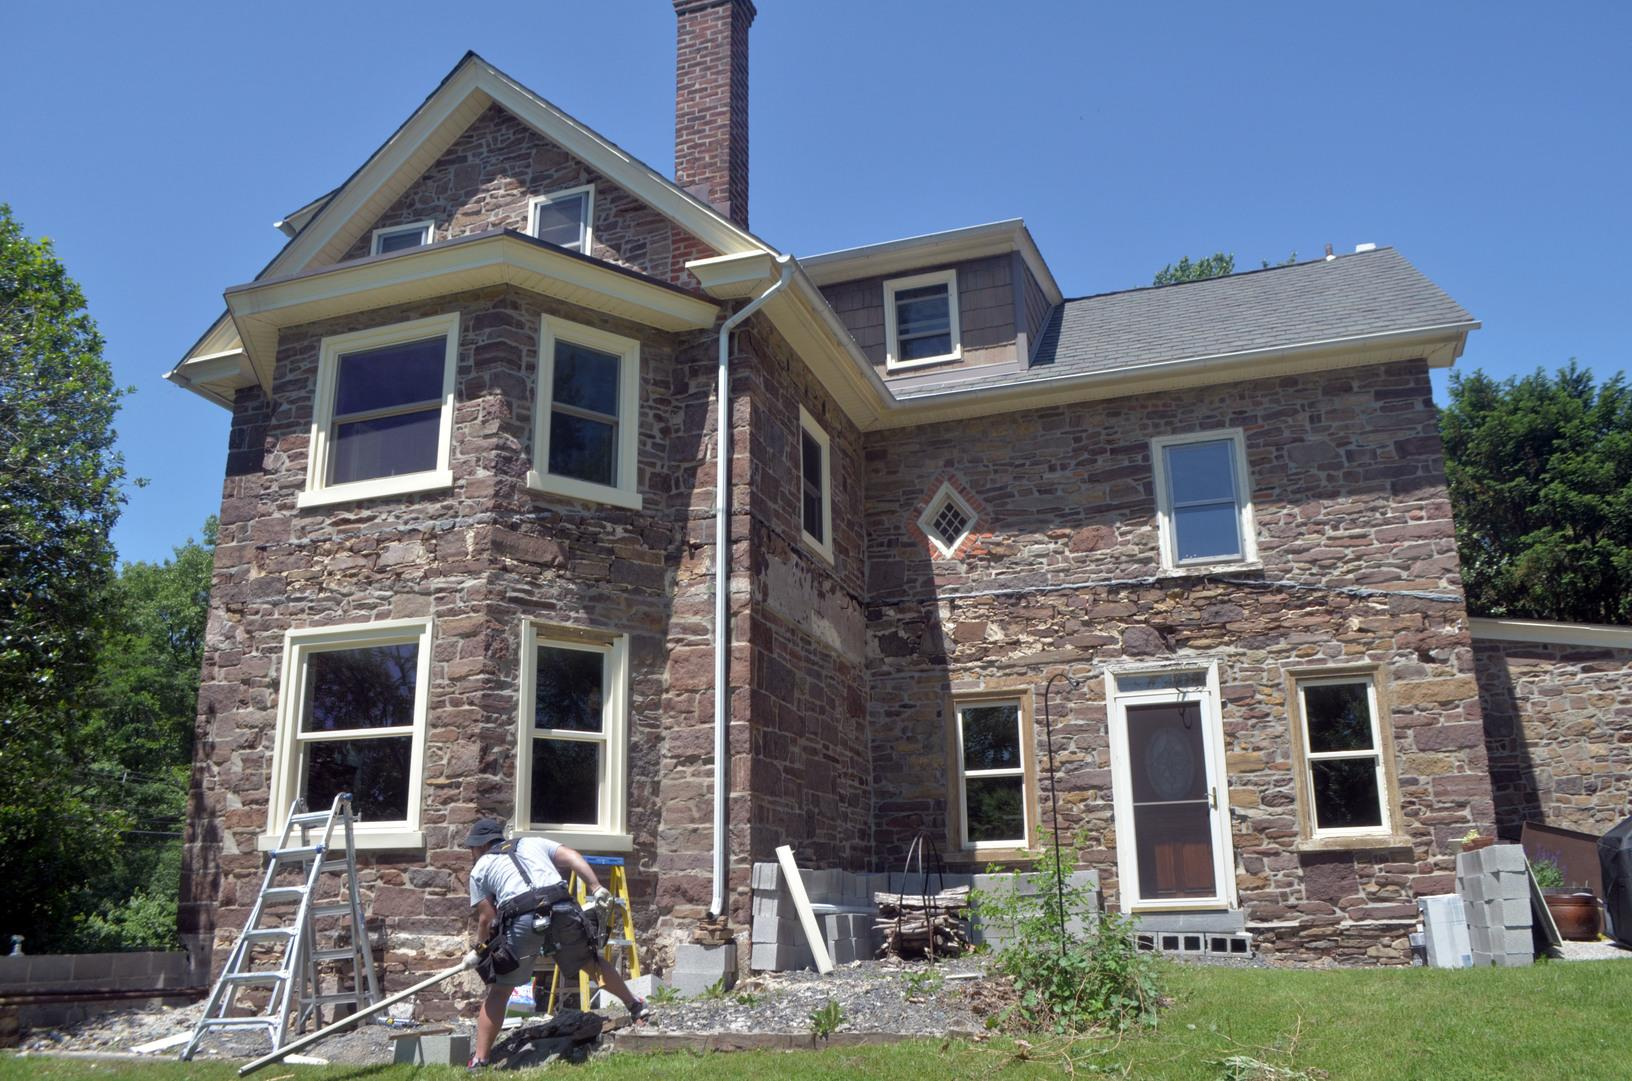 Marvin Infinity Fiberglass with Cashmere Exterior and White Interior Installation on Historic Home in Lansdale, PA - After Photo